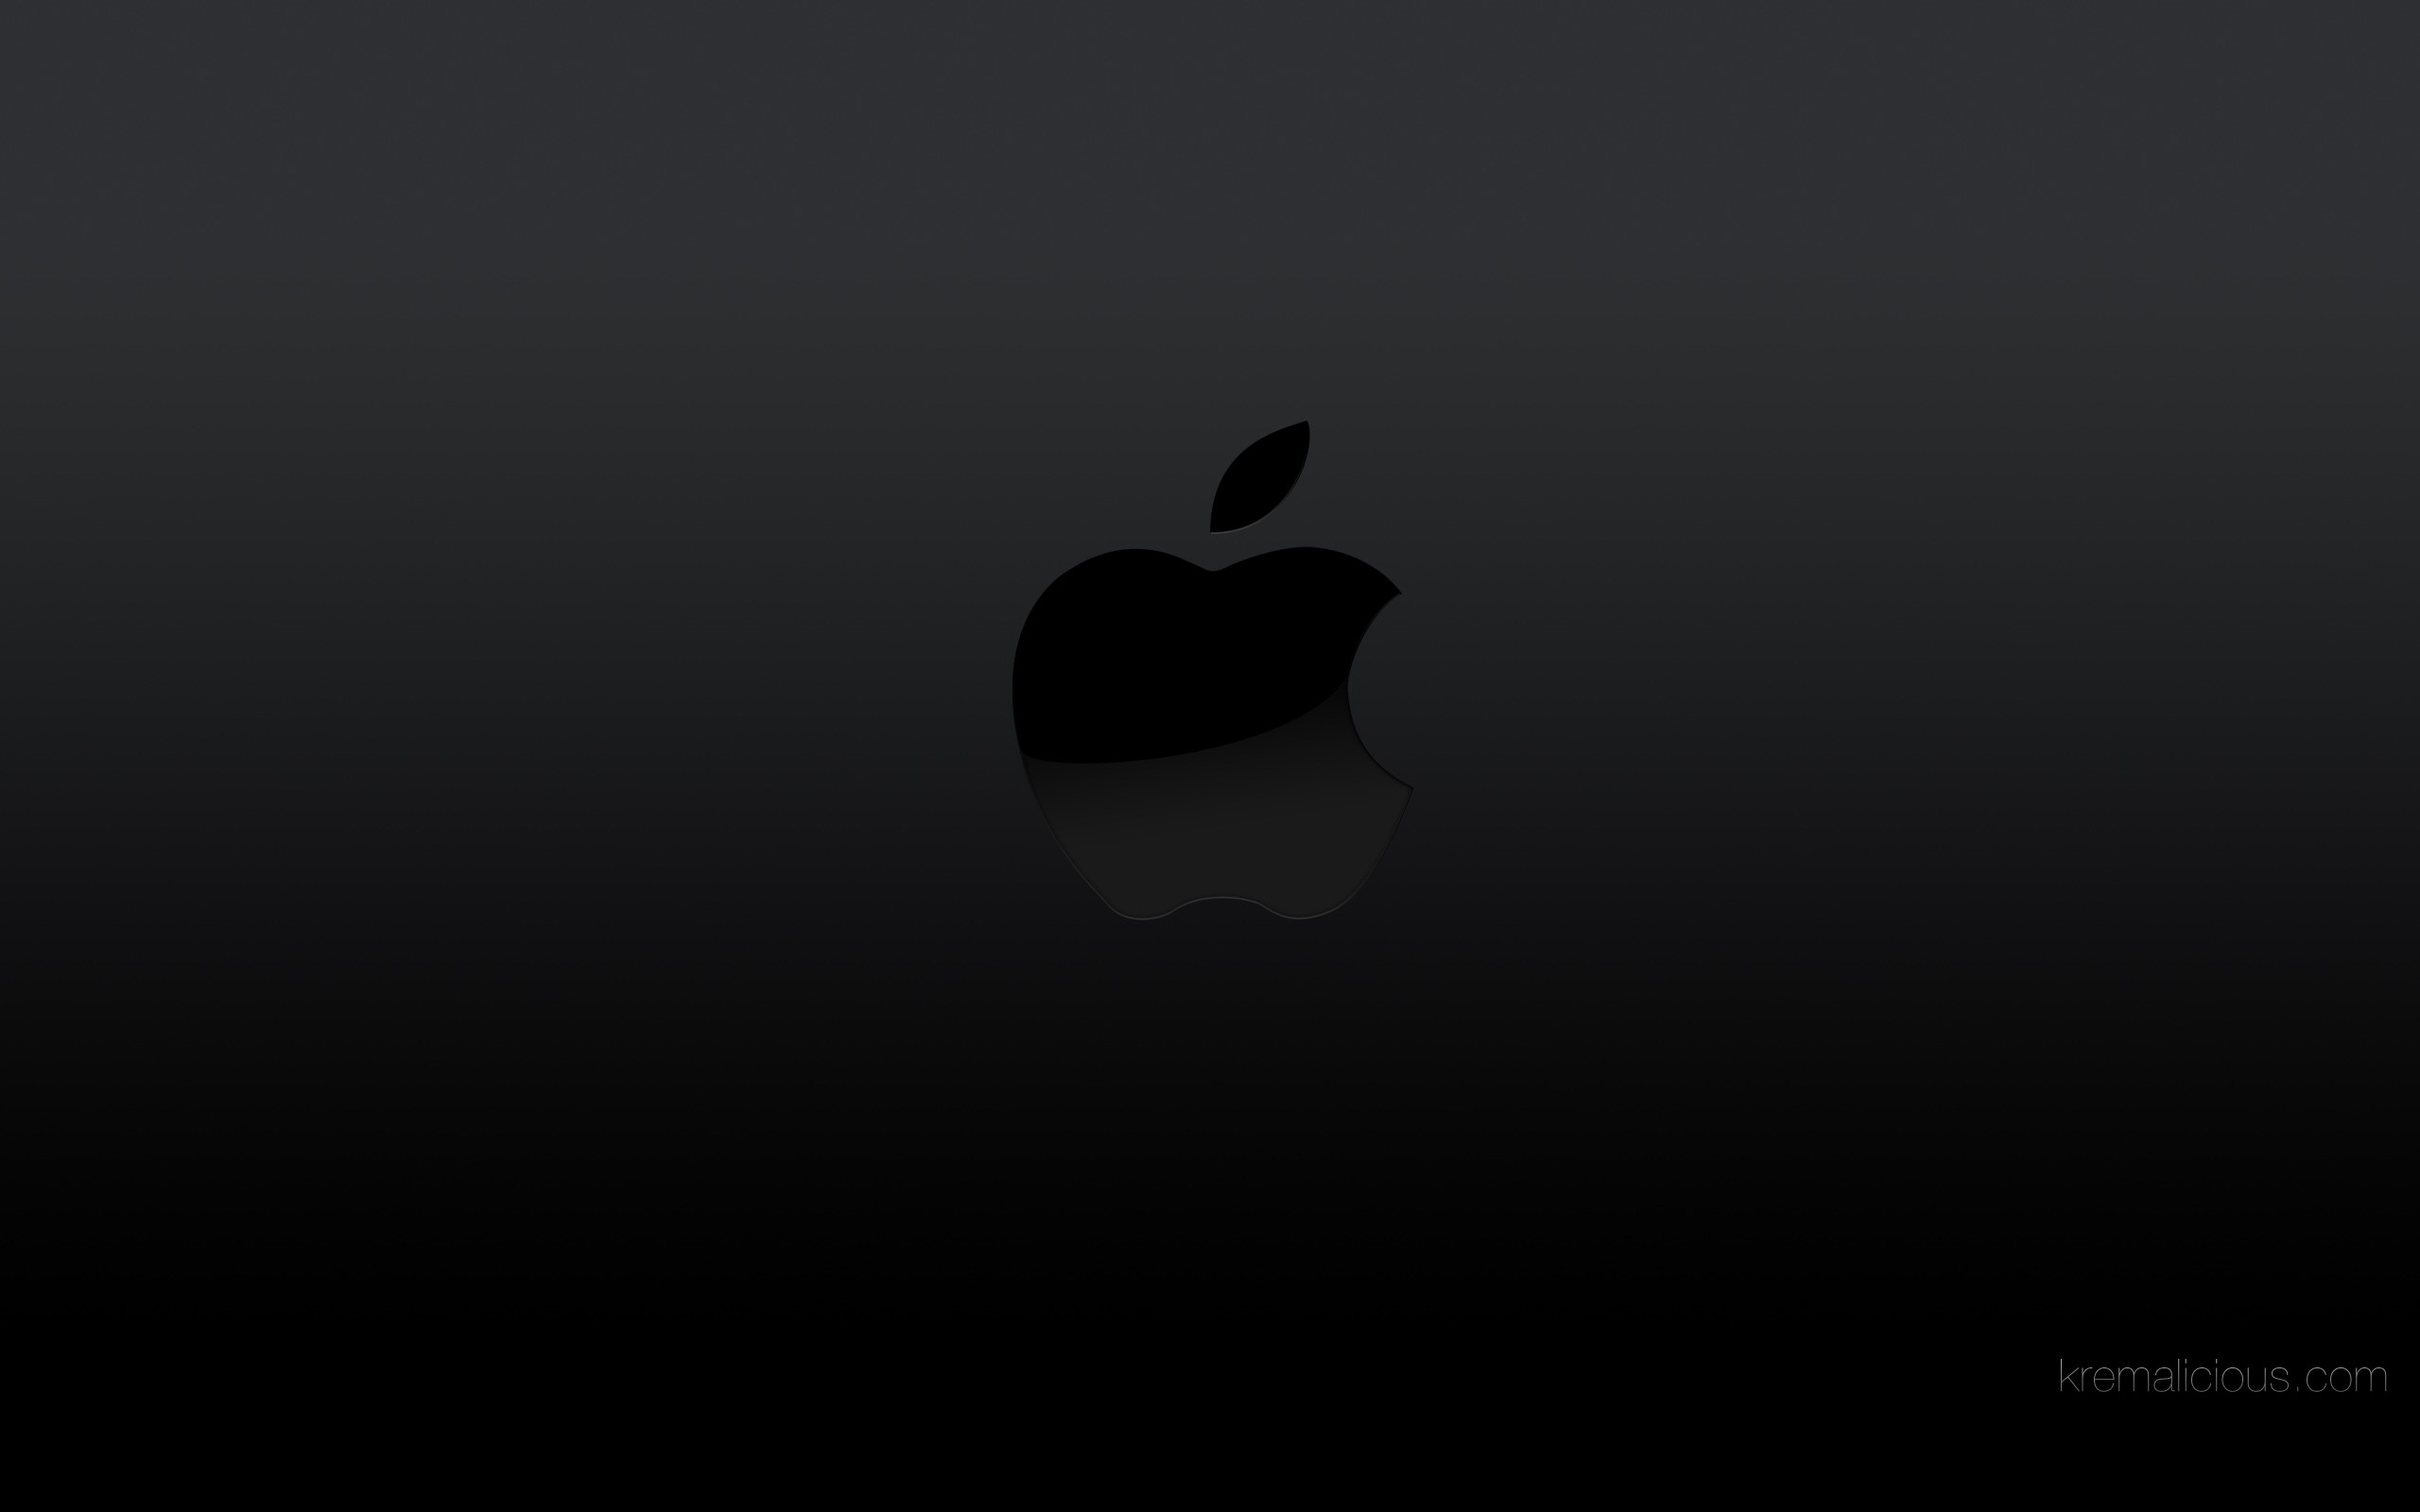 Apple Background Download Free Amazing Full Hd Wallpapers For